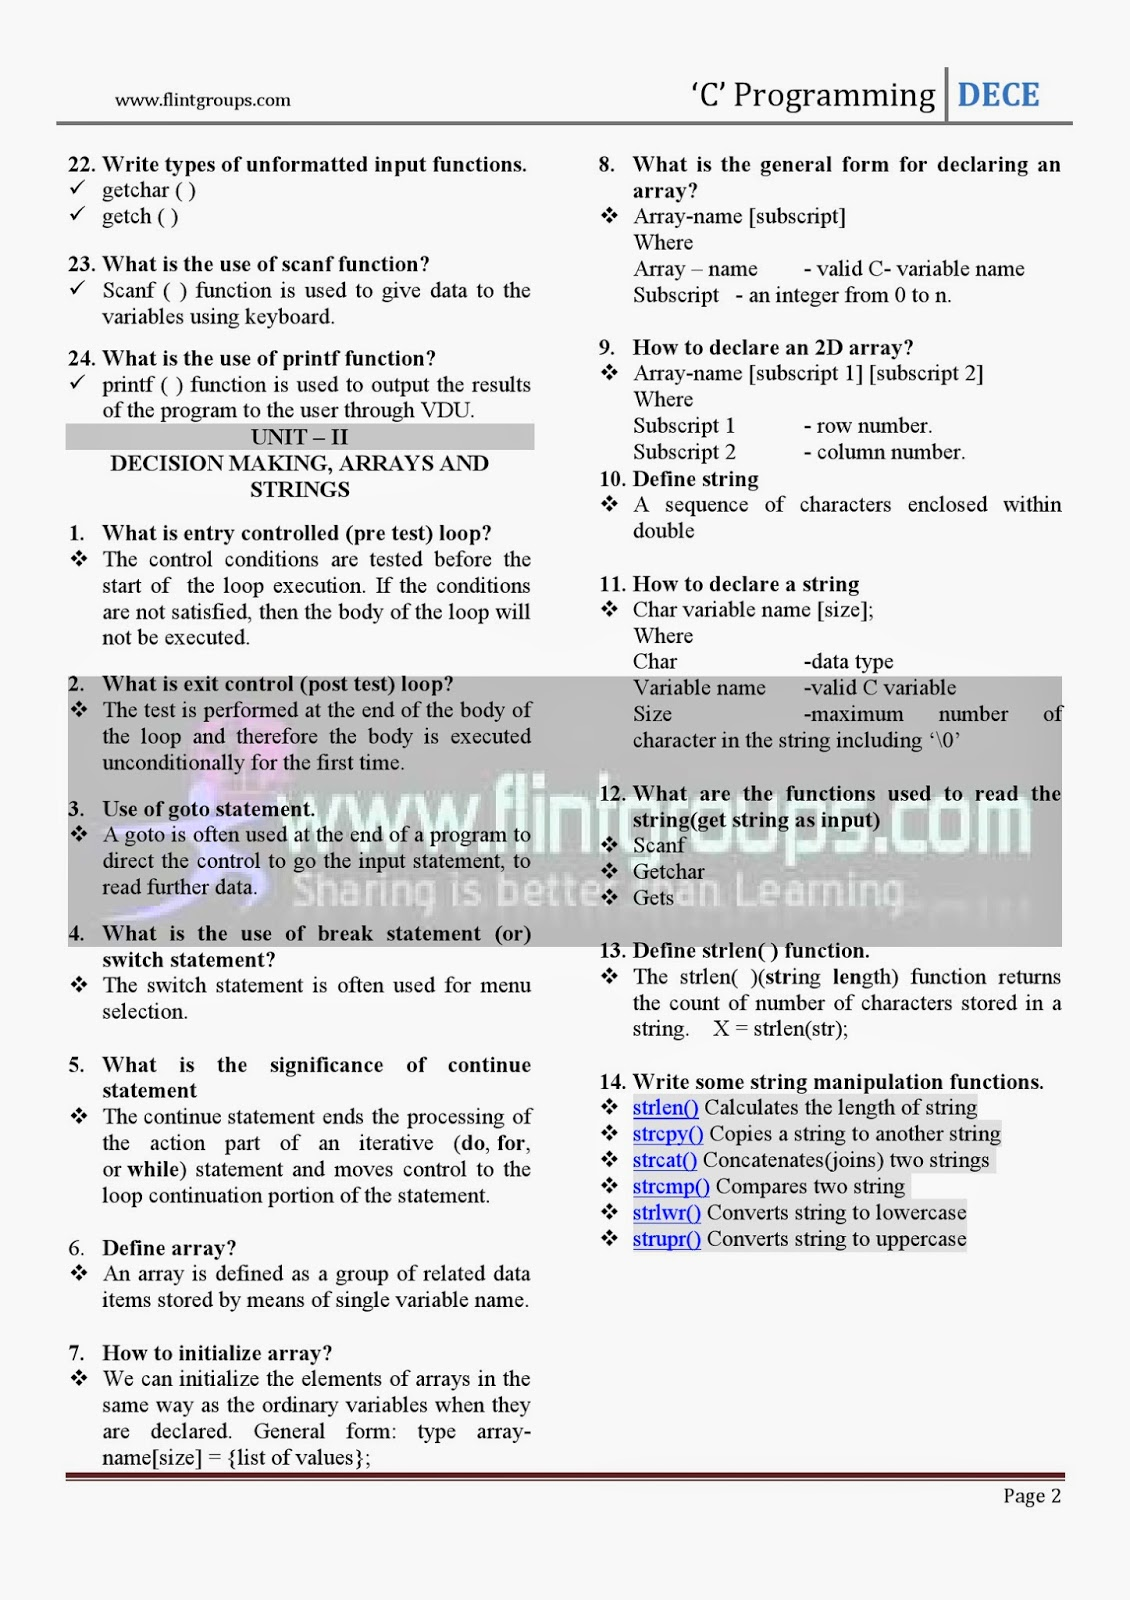 c programming one mark questions and answers for tamilnadu as pdf